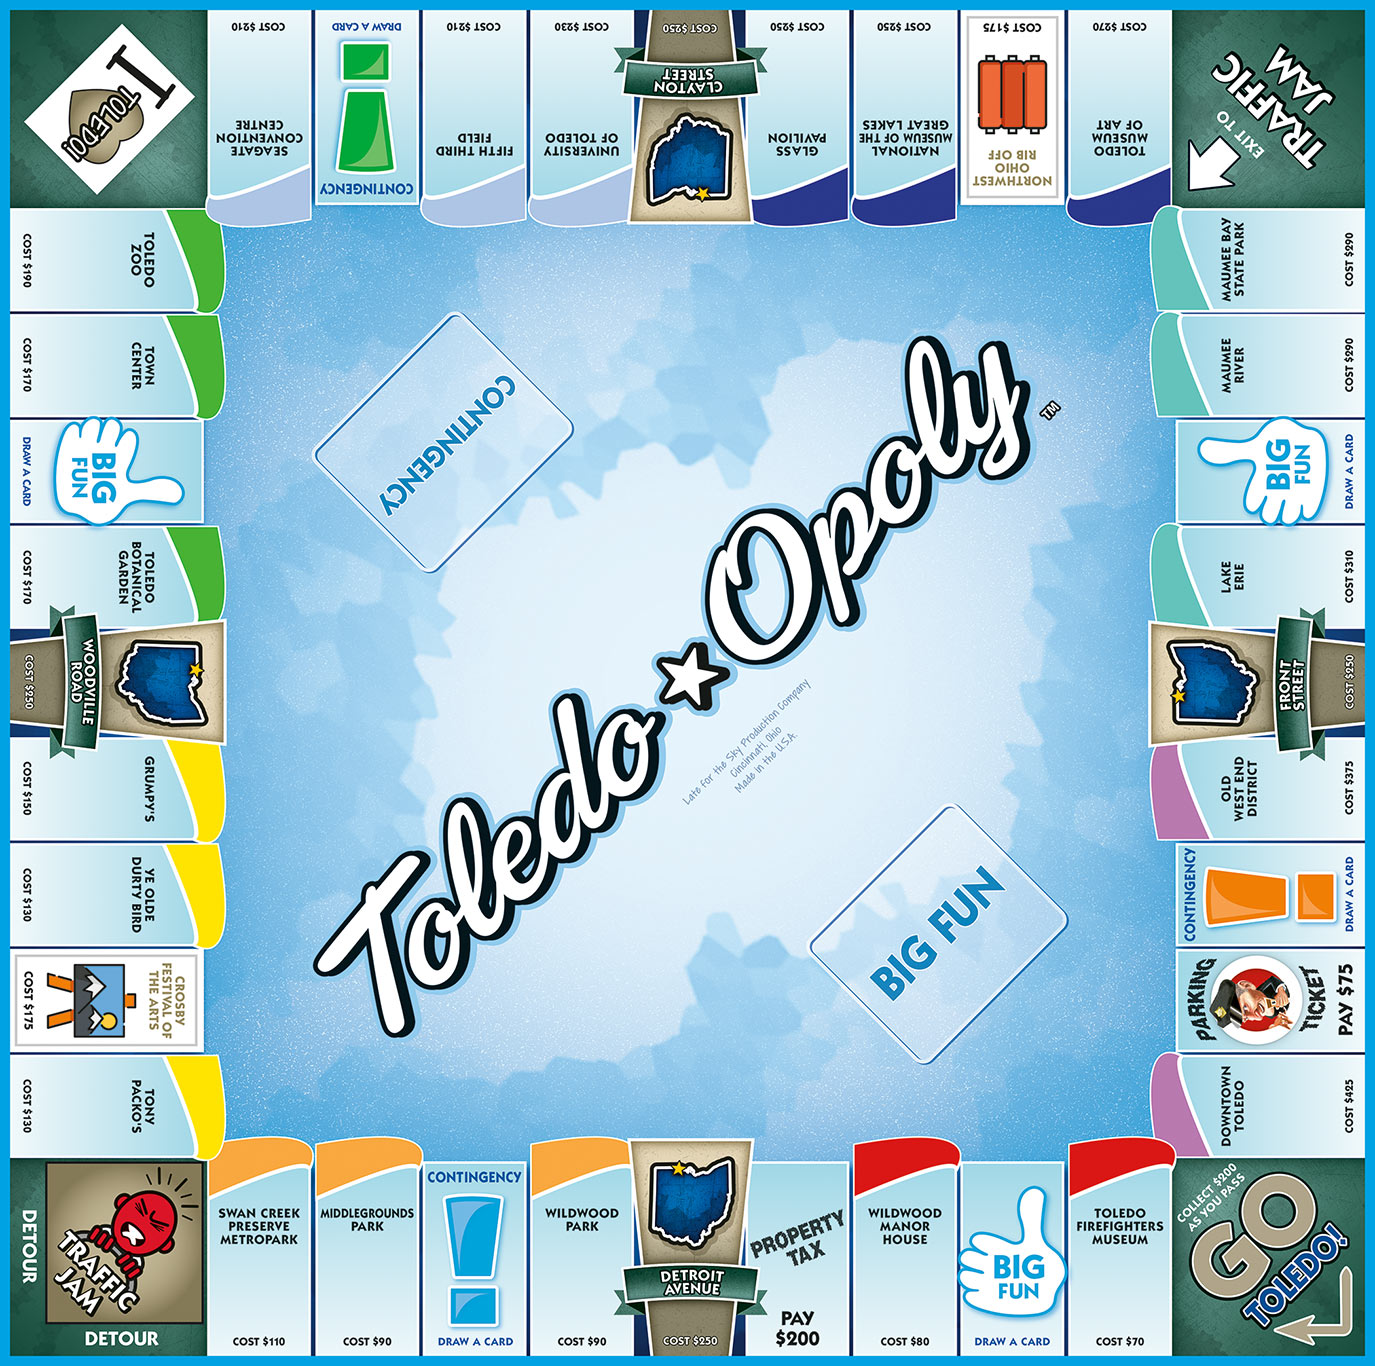 TOLEDO-OPOLY Board Game